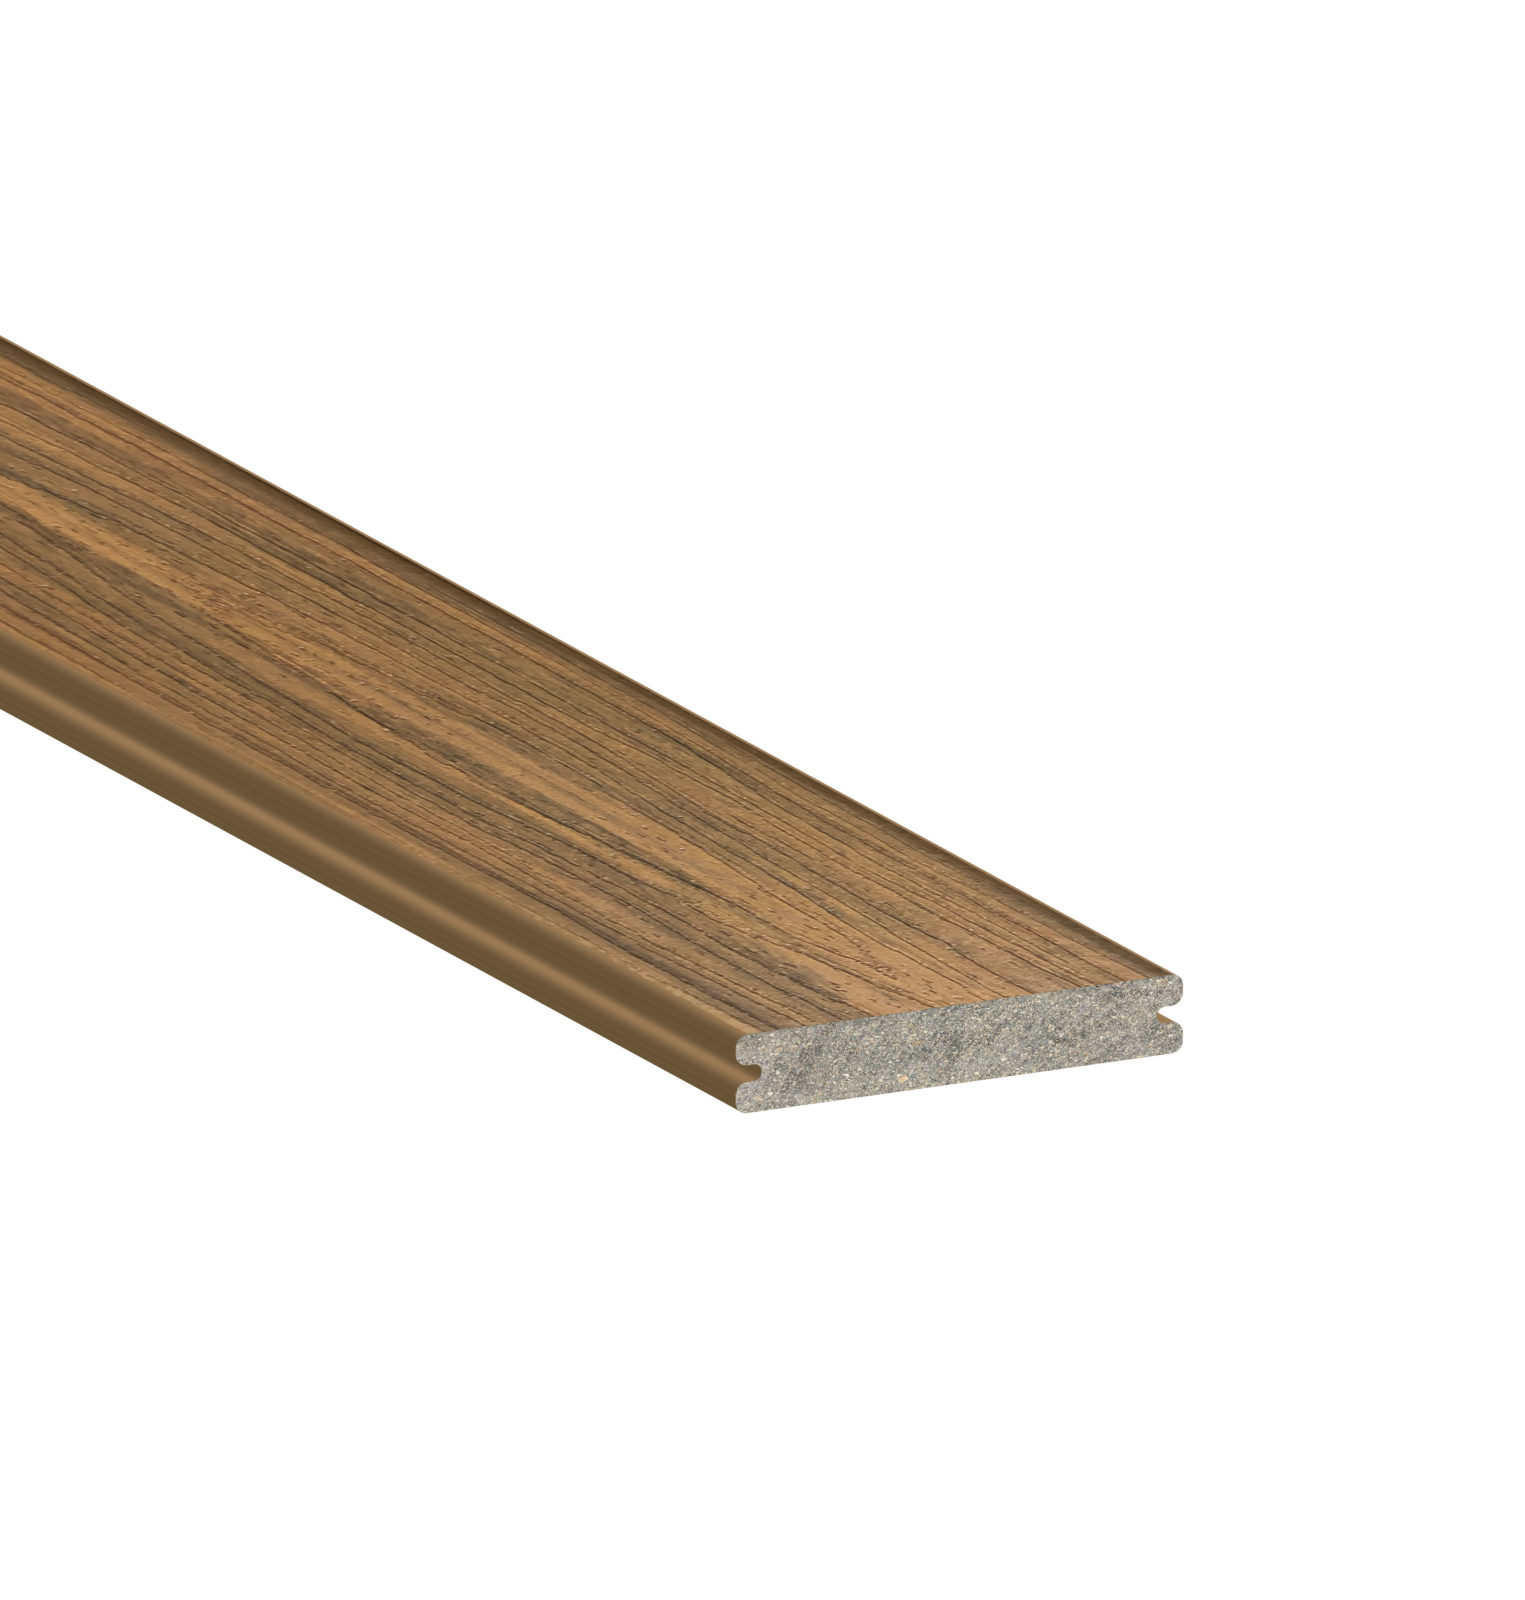 Trex transcend tropics havana gold grooved 12 39 schillings for Capped composite decking prices